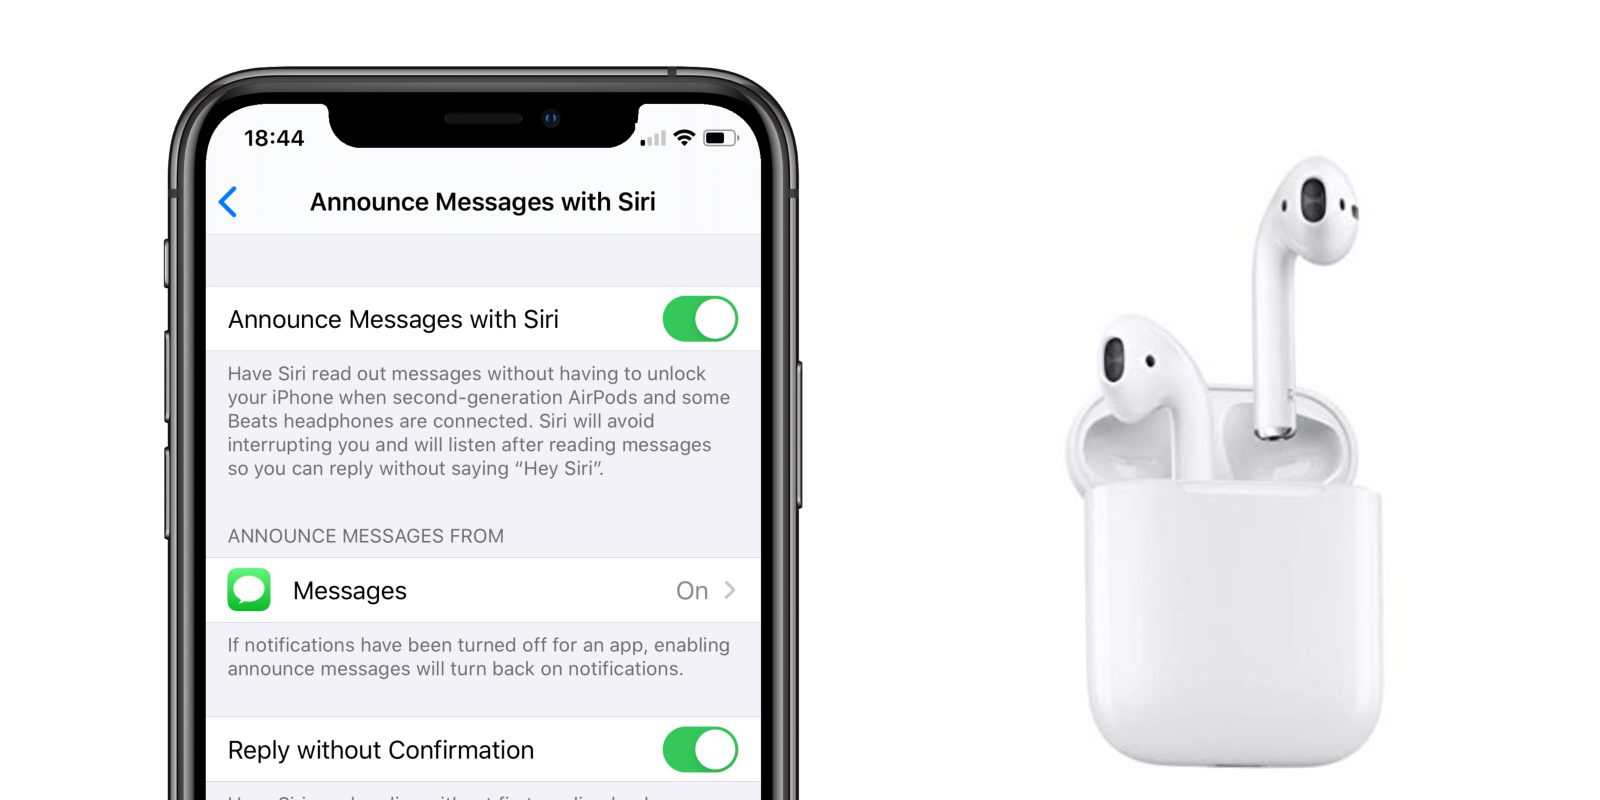 'Announce Messages with Siri' feature returns for AirPods owners in iOS 13.2